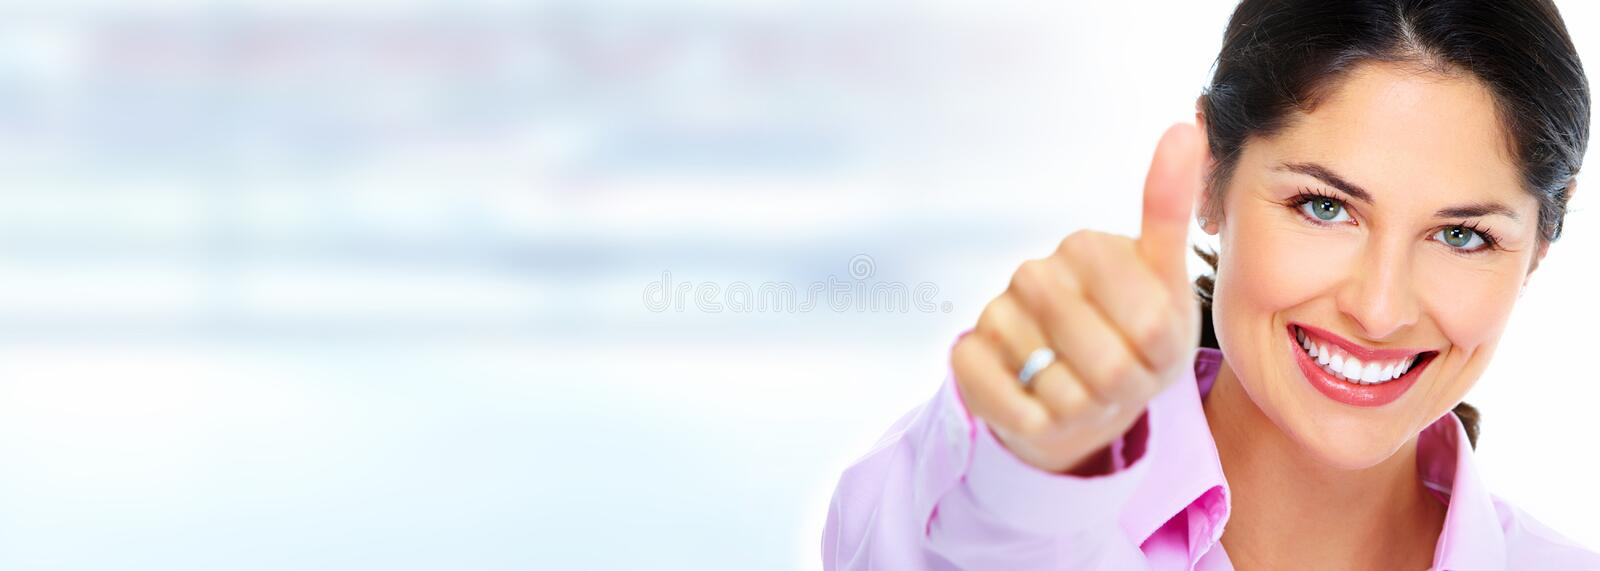 Business woman. Successful business woman over abstract office background stock photo